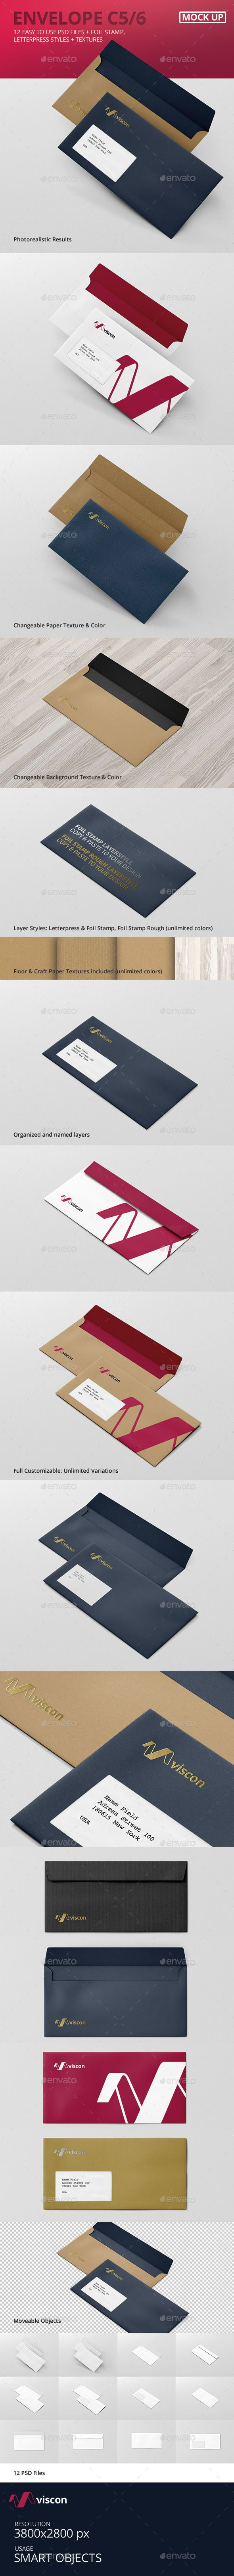 Envelope C5 / 6 Mock-Up (Stationery)